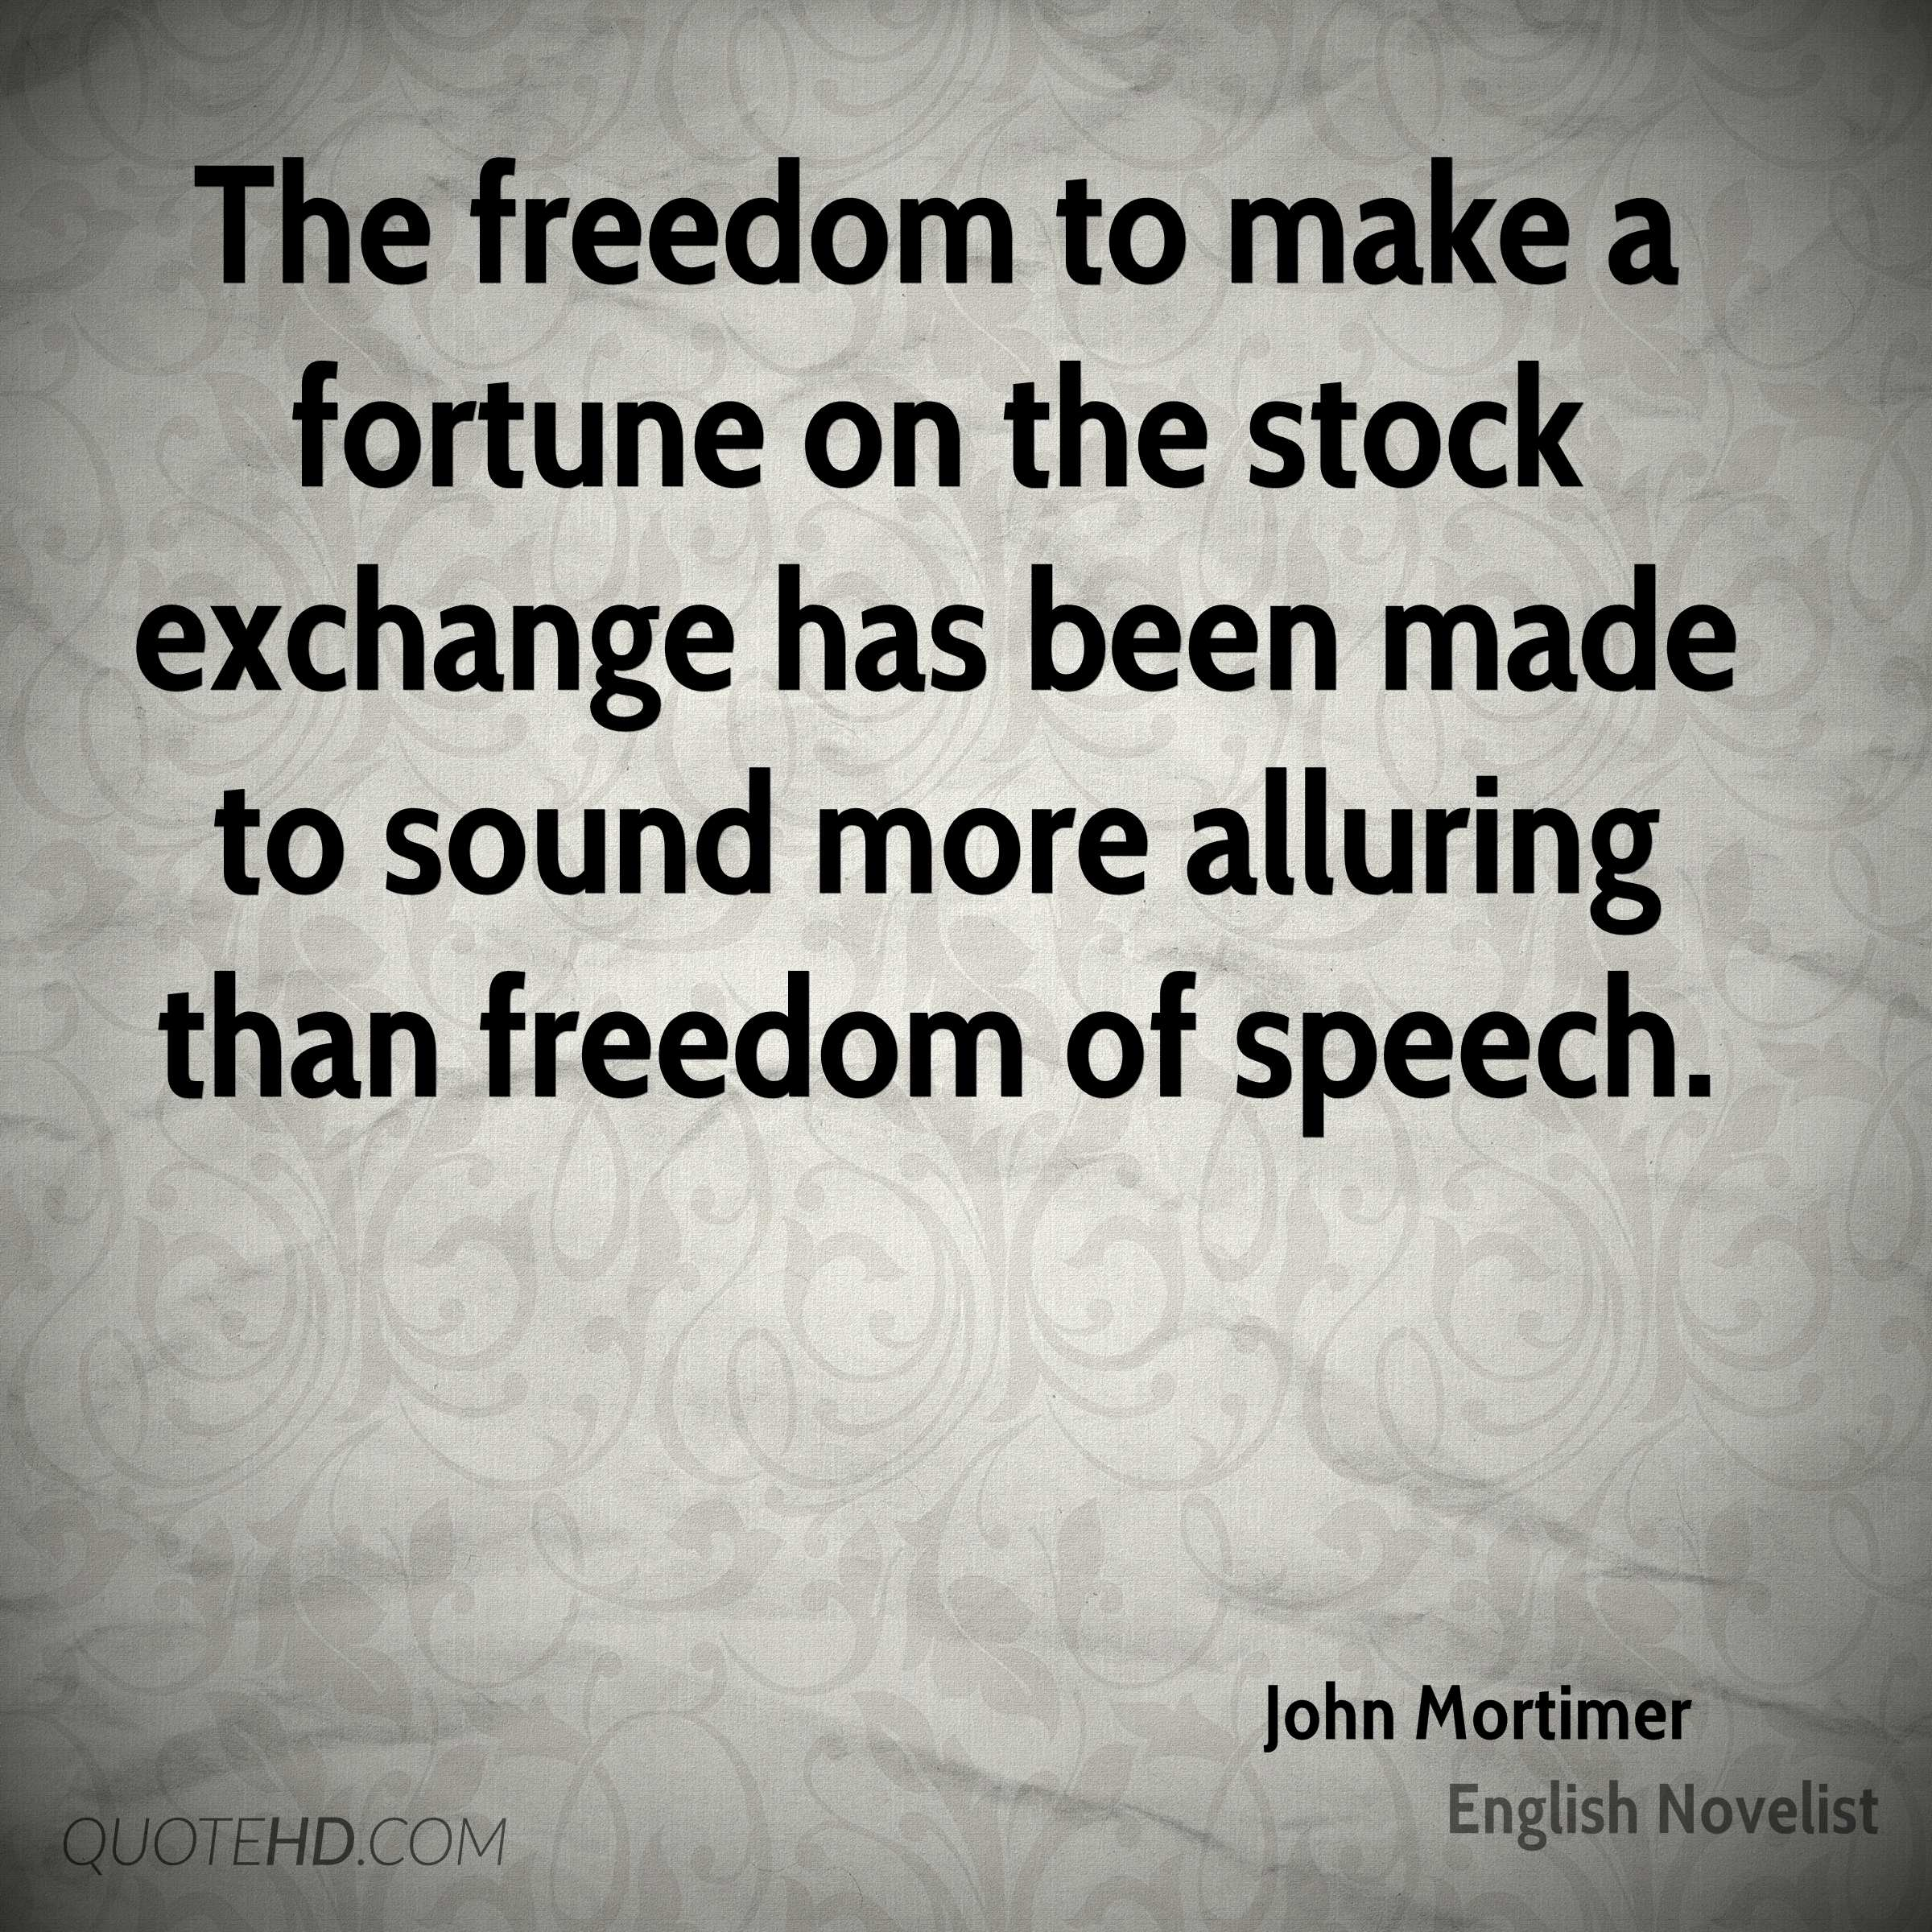 The freedom to make a fortune on the stock exchange has been made to sound more alluring than freedom of speech.